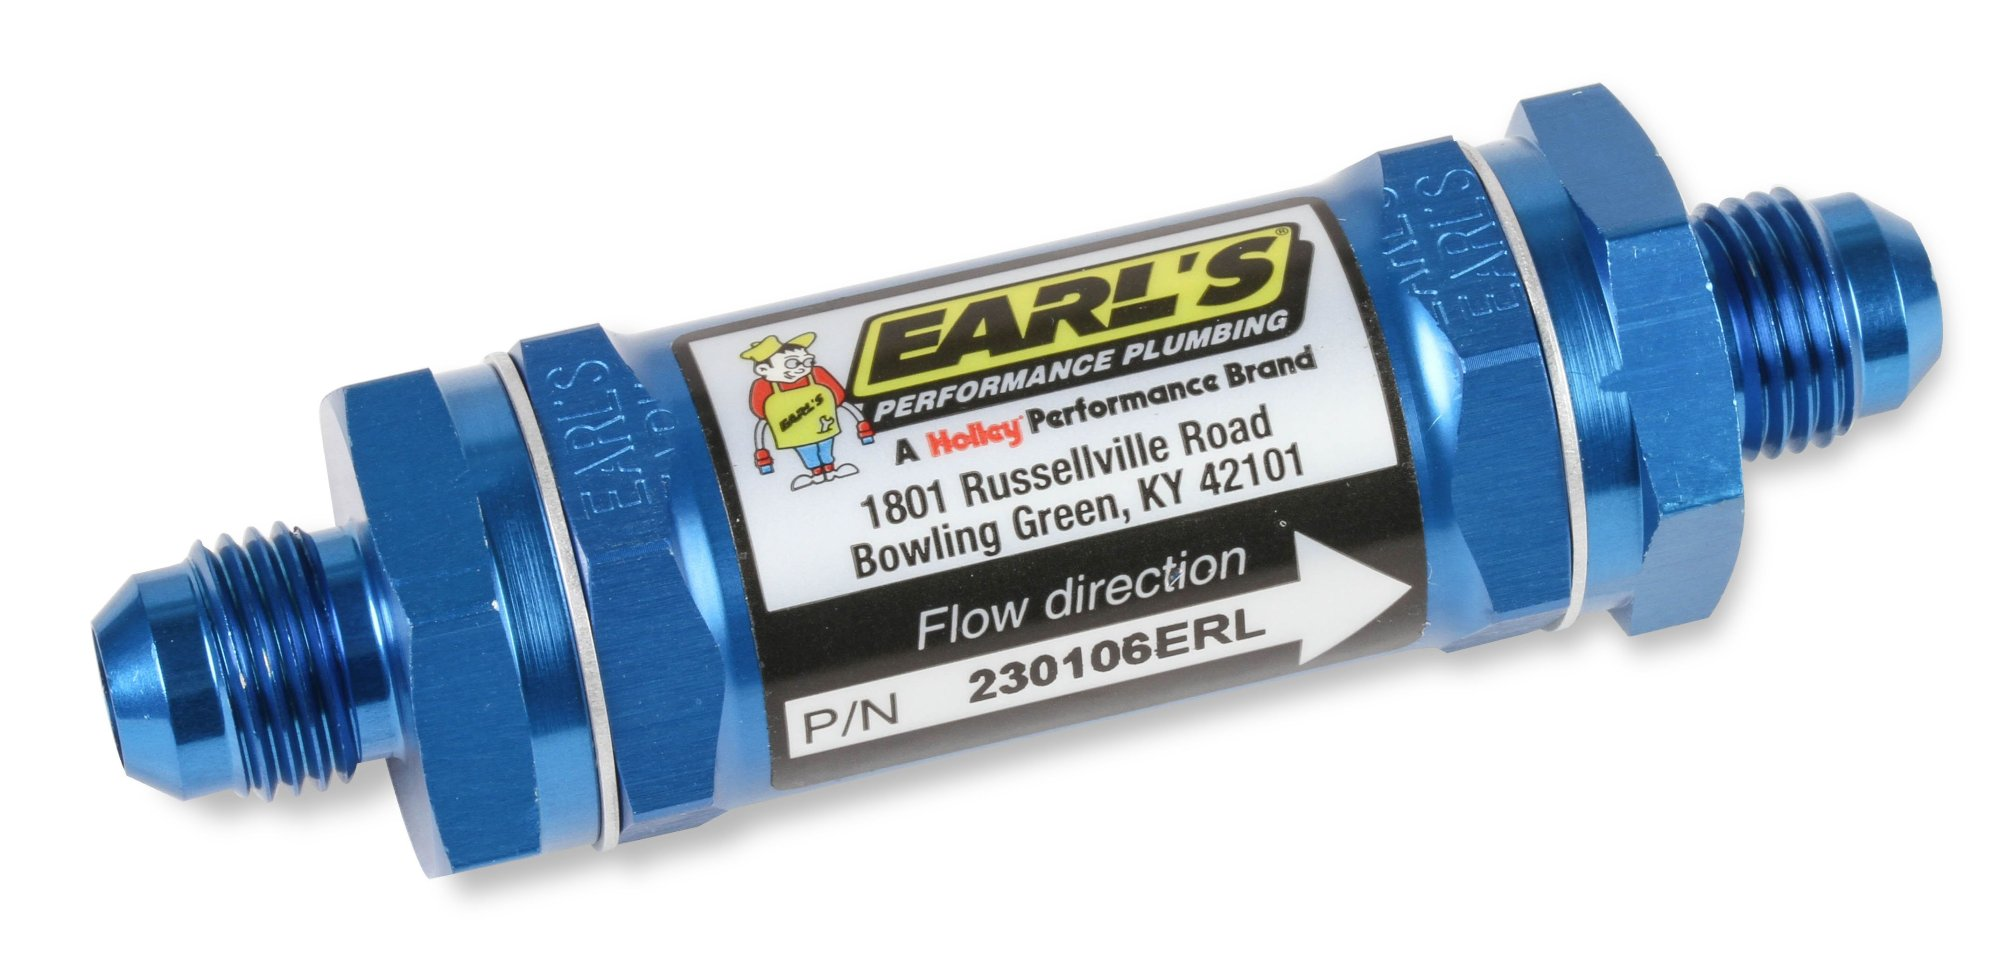 hight resolution of 230106erl earls fuel filter image